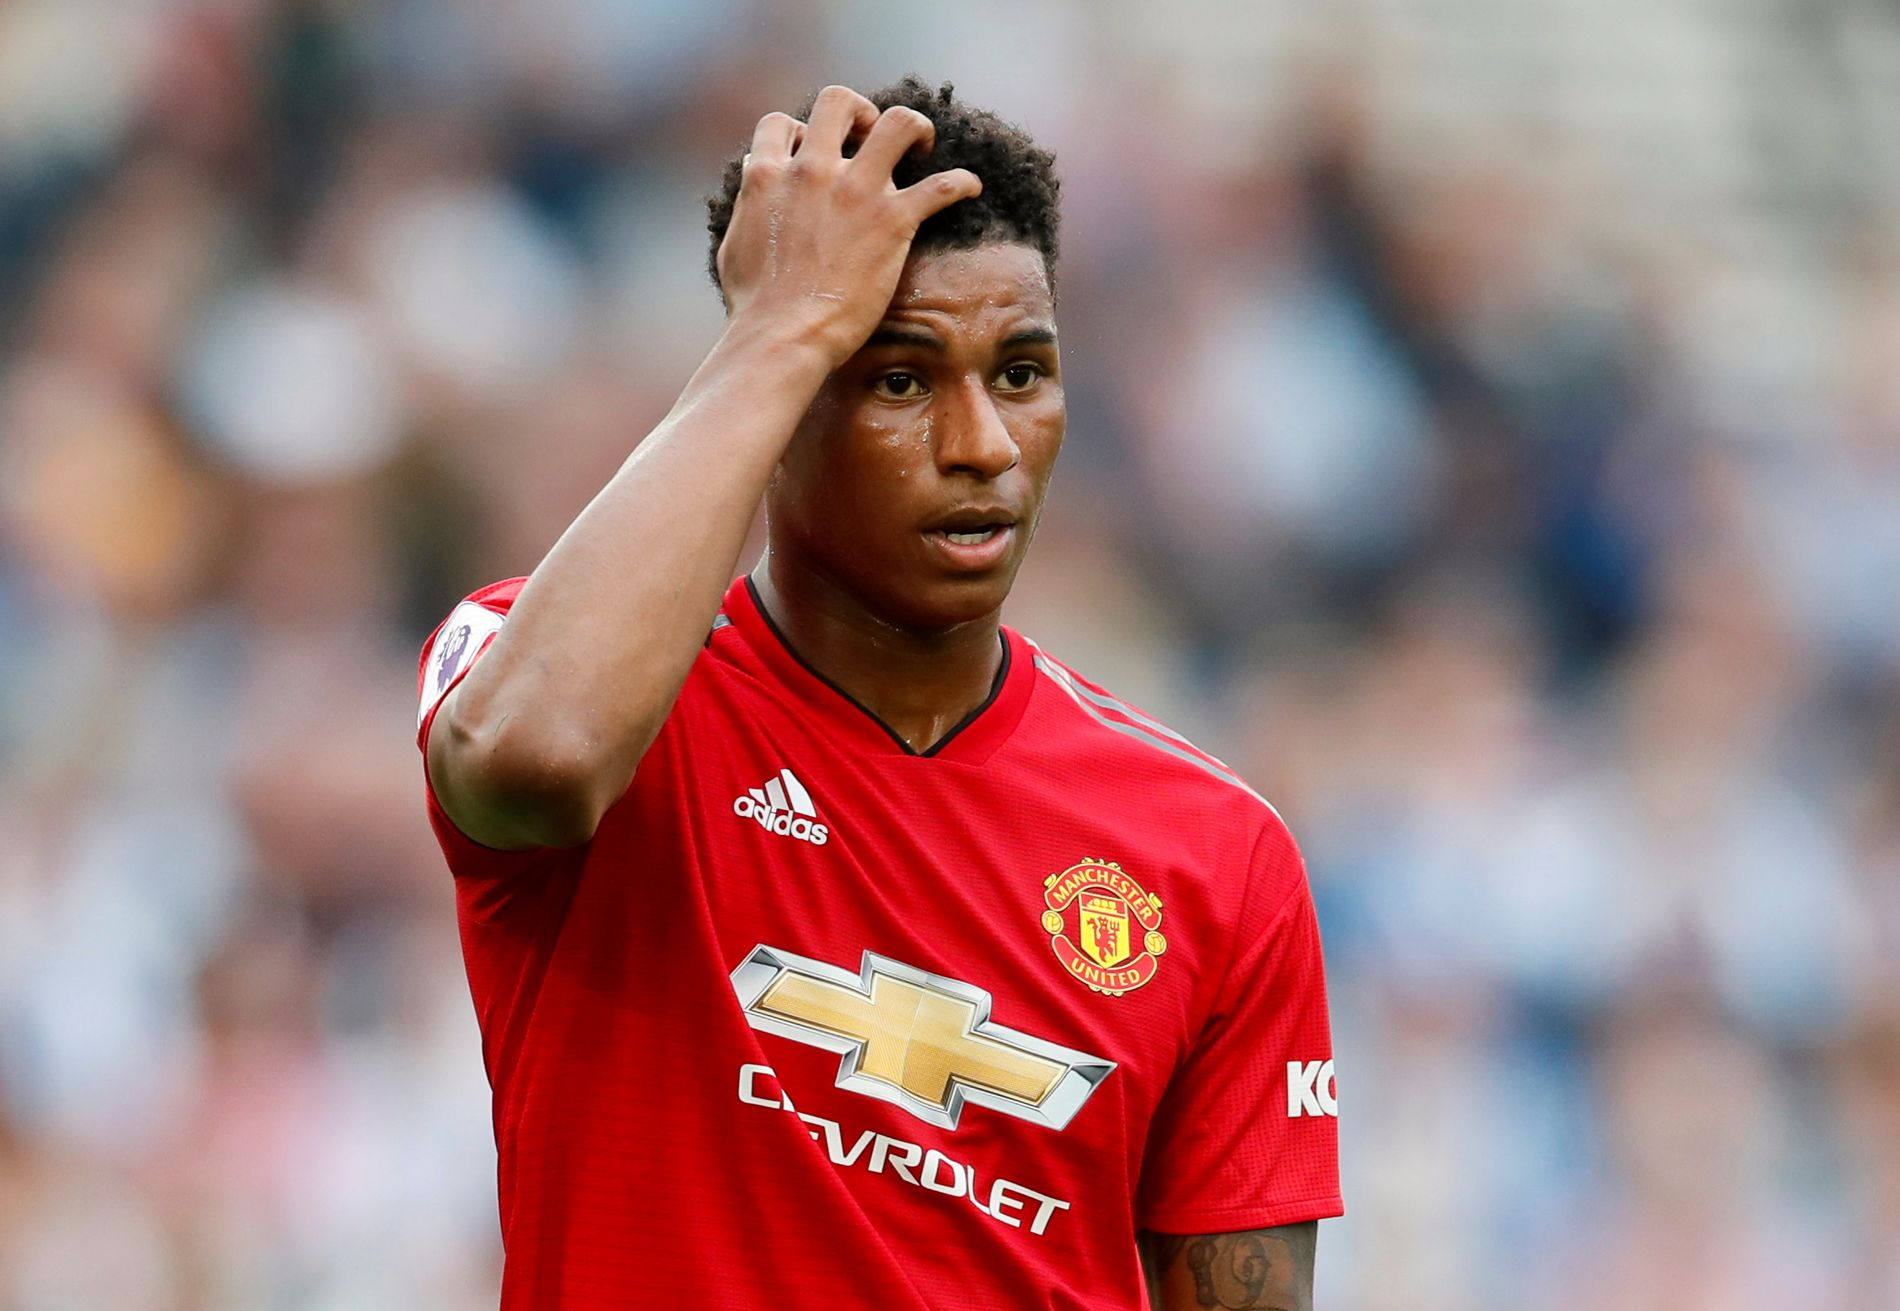 KLØR SEG I HODET? Kanskje er det The Clash-sangen «Should I stay or should I go» Marcus Rashford nynner på for tiden.